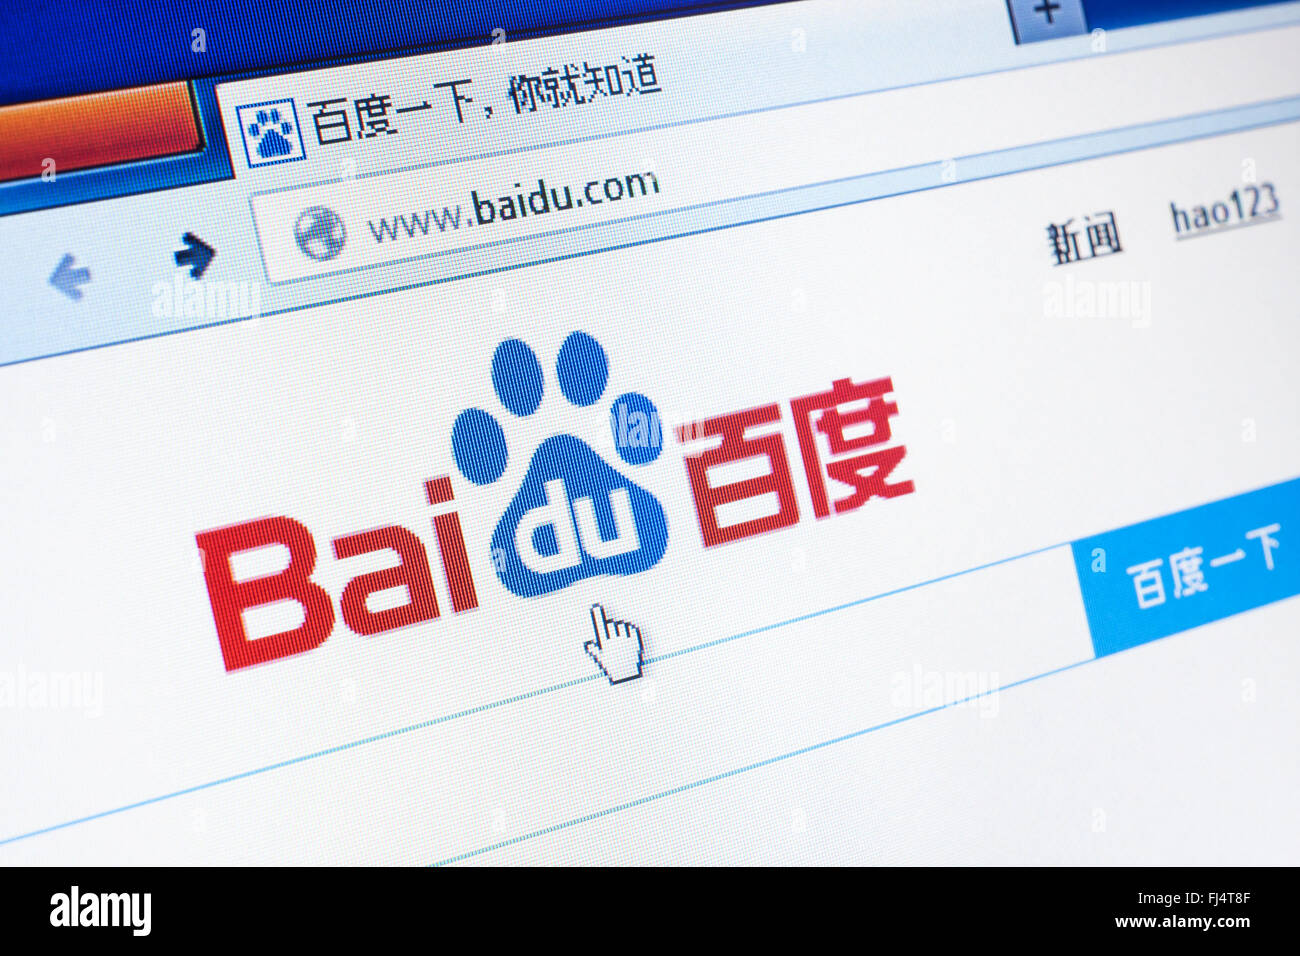 baidu browser free download 2015 for windows 7 & 8